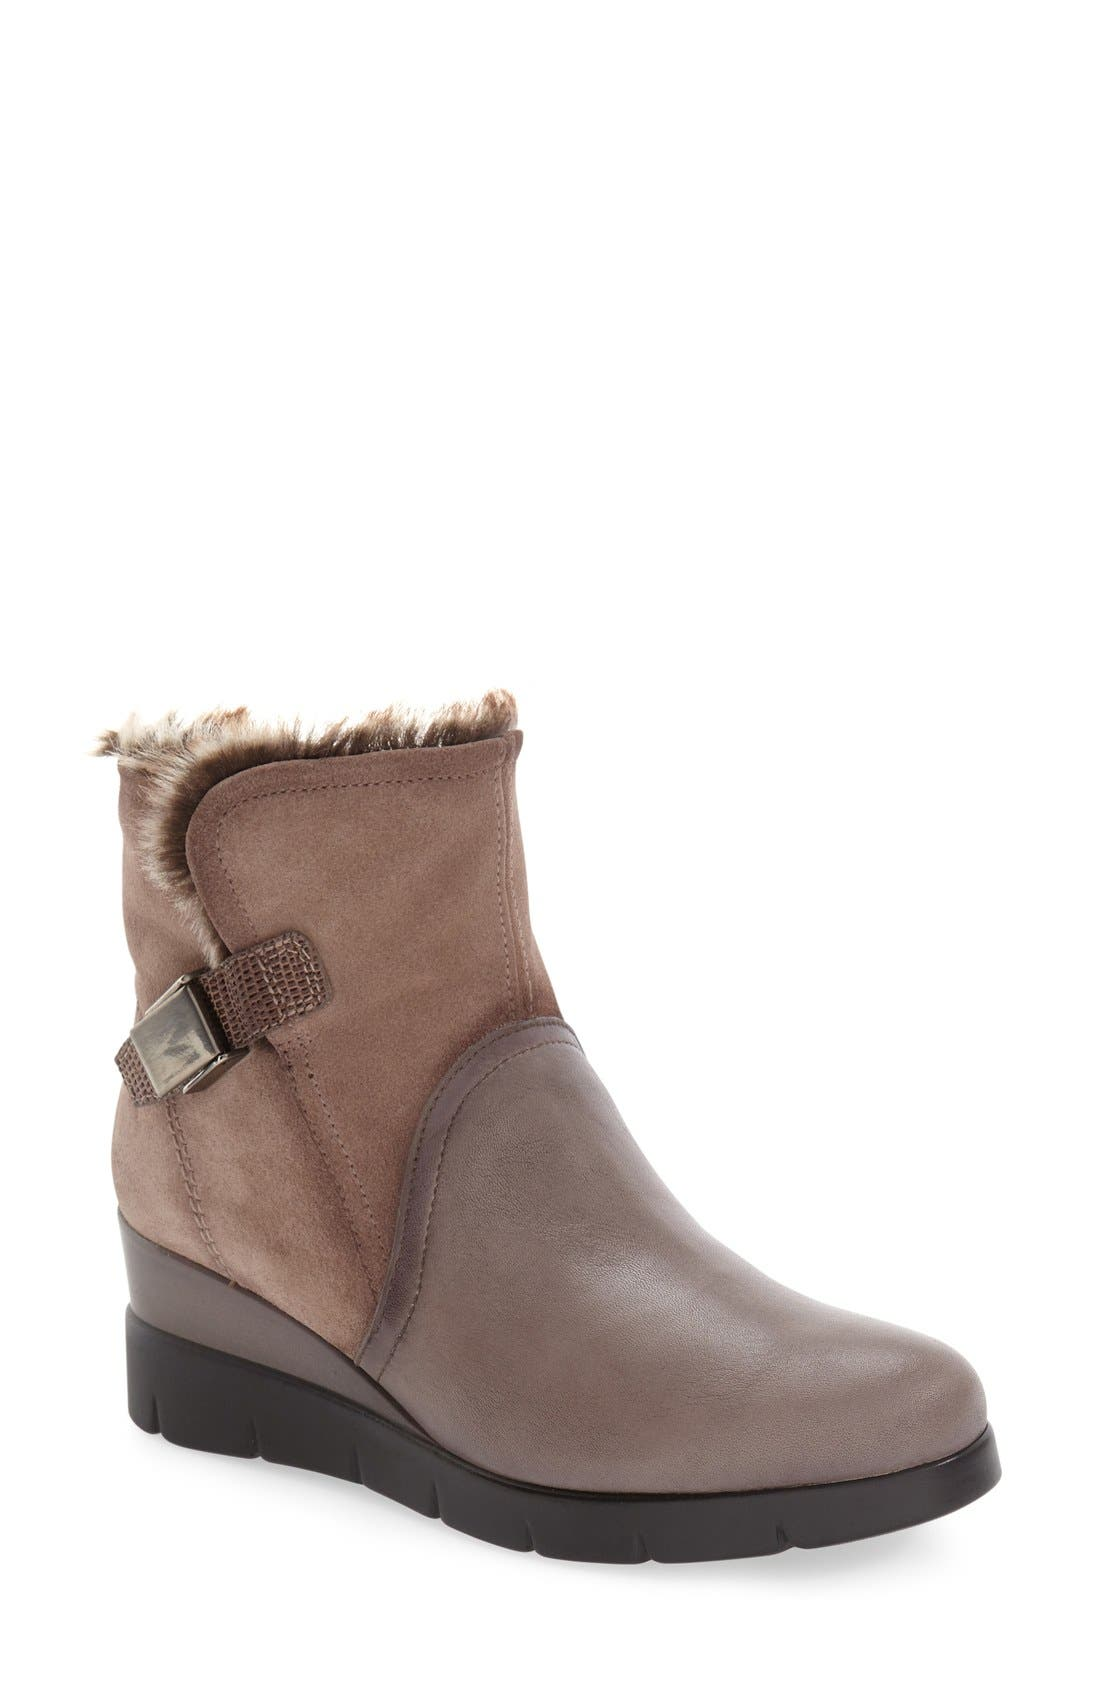 'Langley' Boot,                         Main,                         color, 260